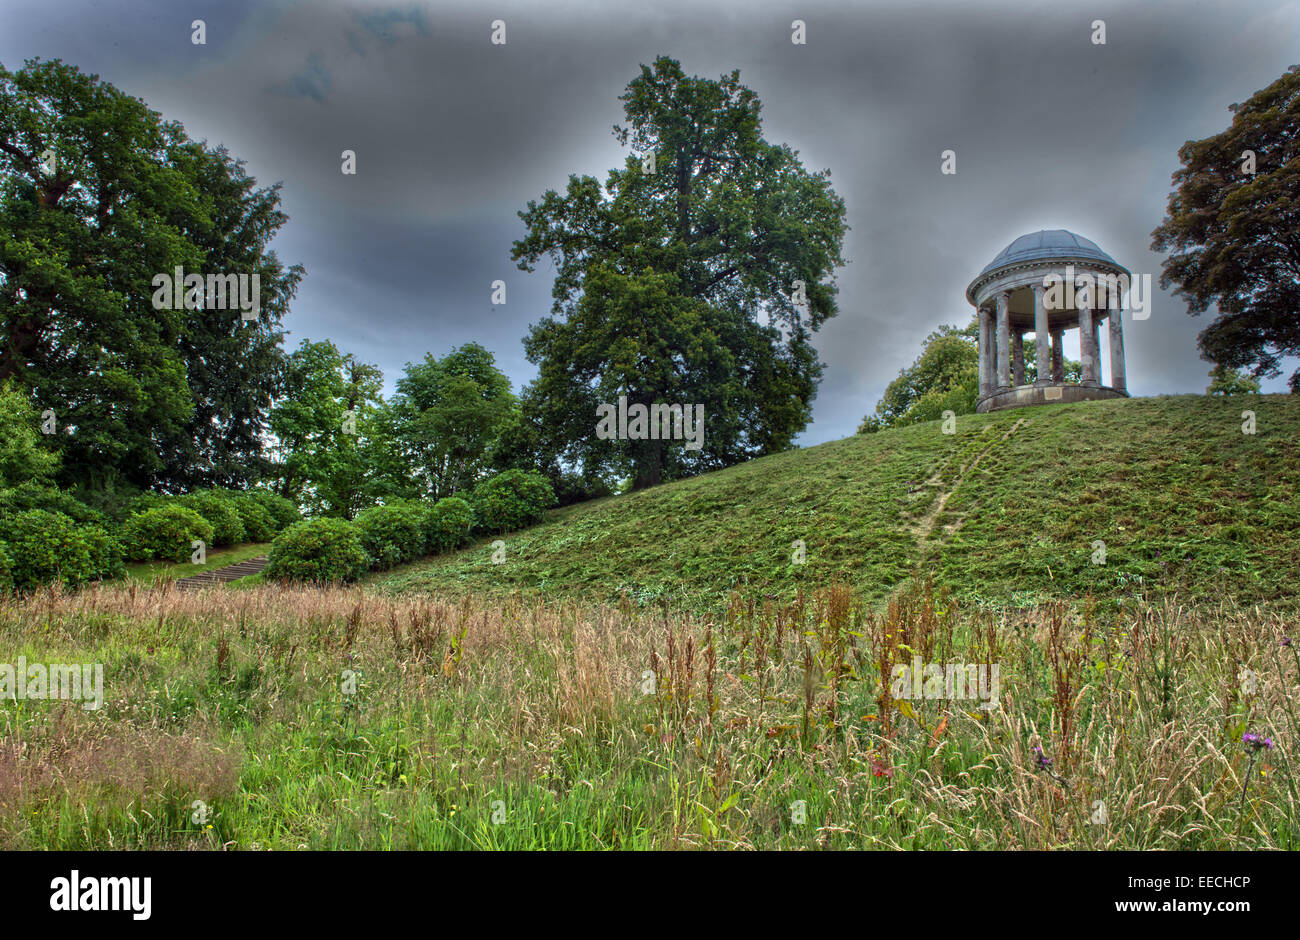 The Ionic Garden Rotunda  in  Petworth Park (National Trust) Petworth, West Sussex, England, Uk - Stock Image